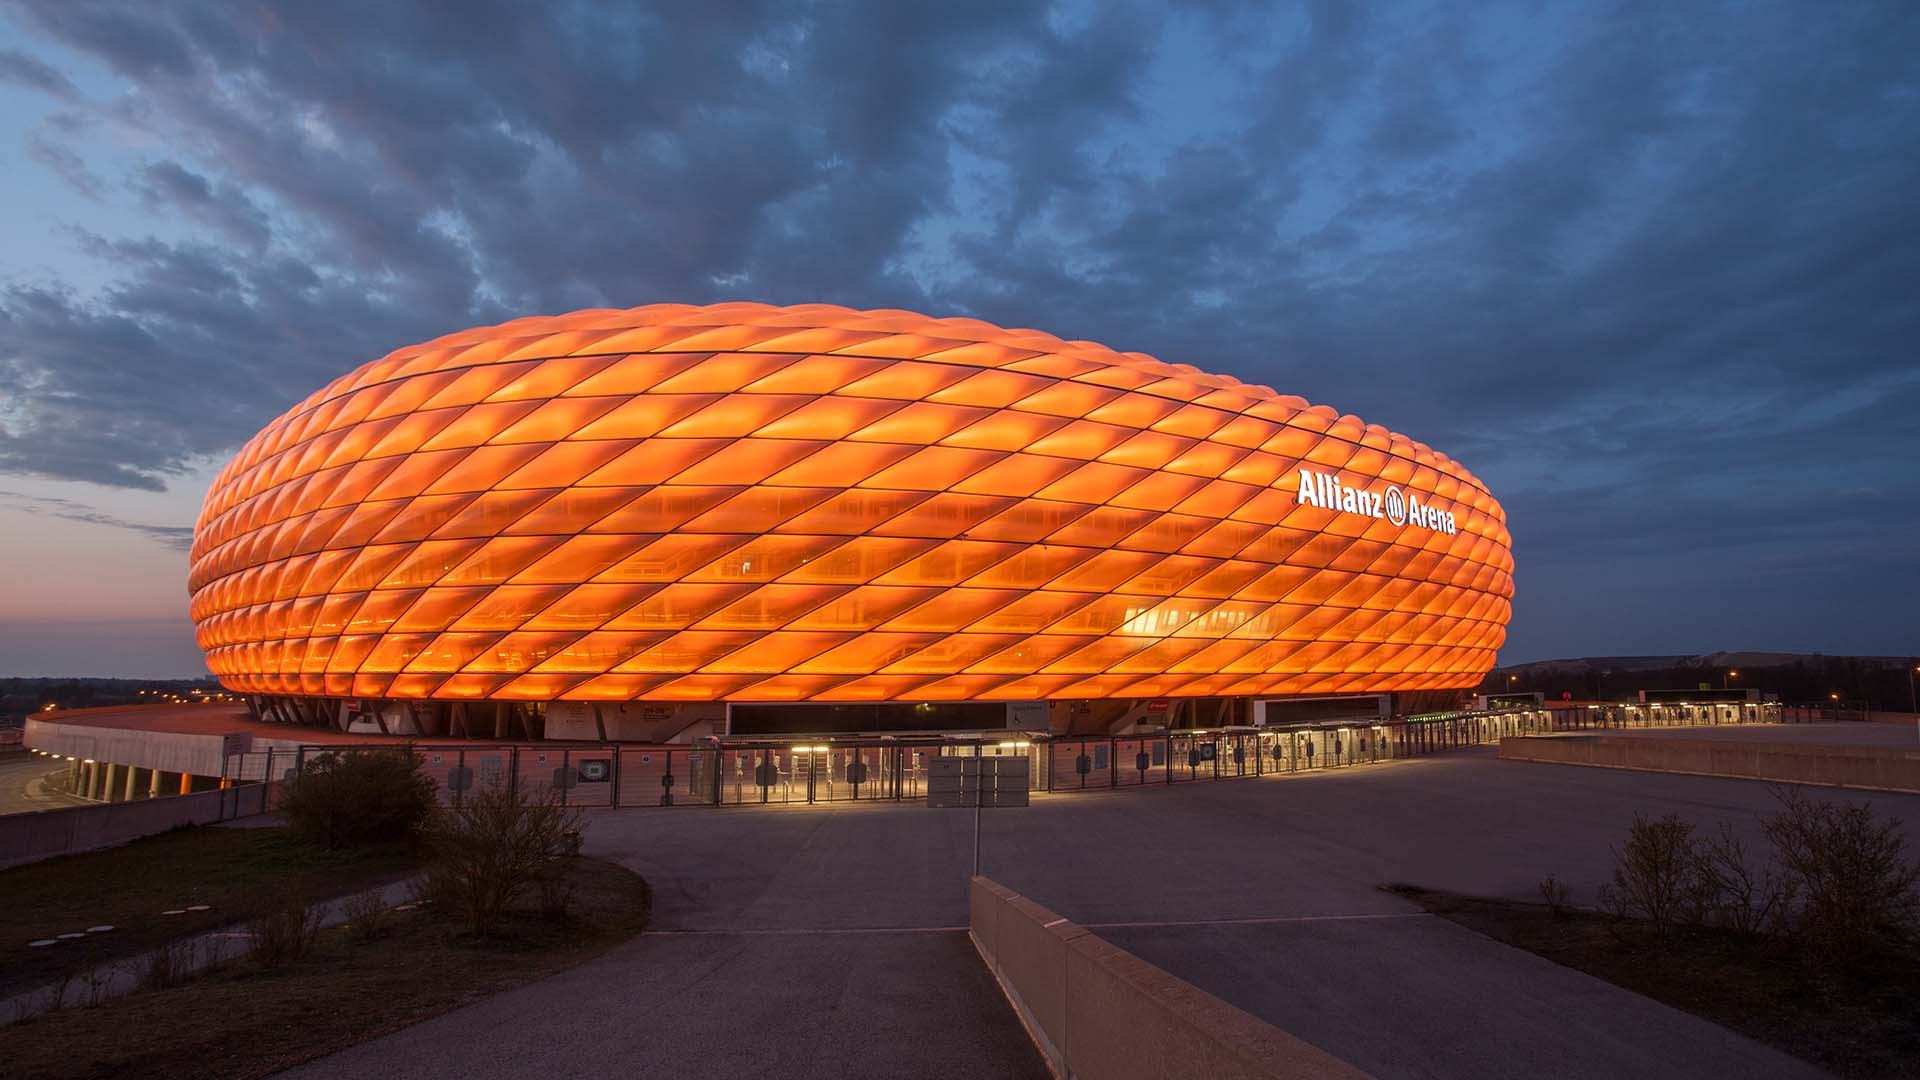 201124_AllianzArena_orange_duc.jpg